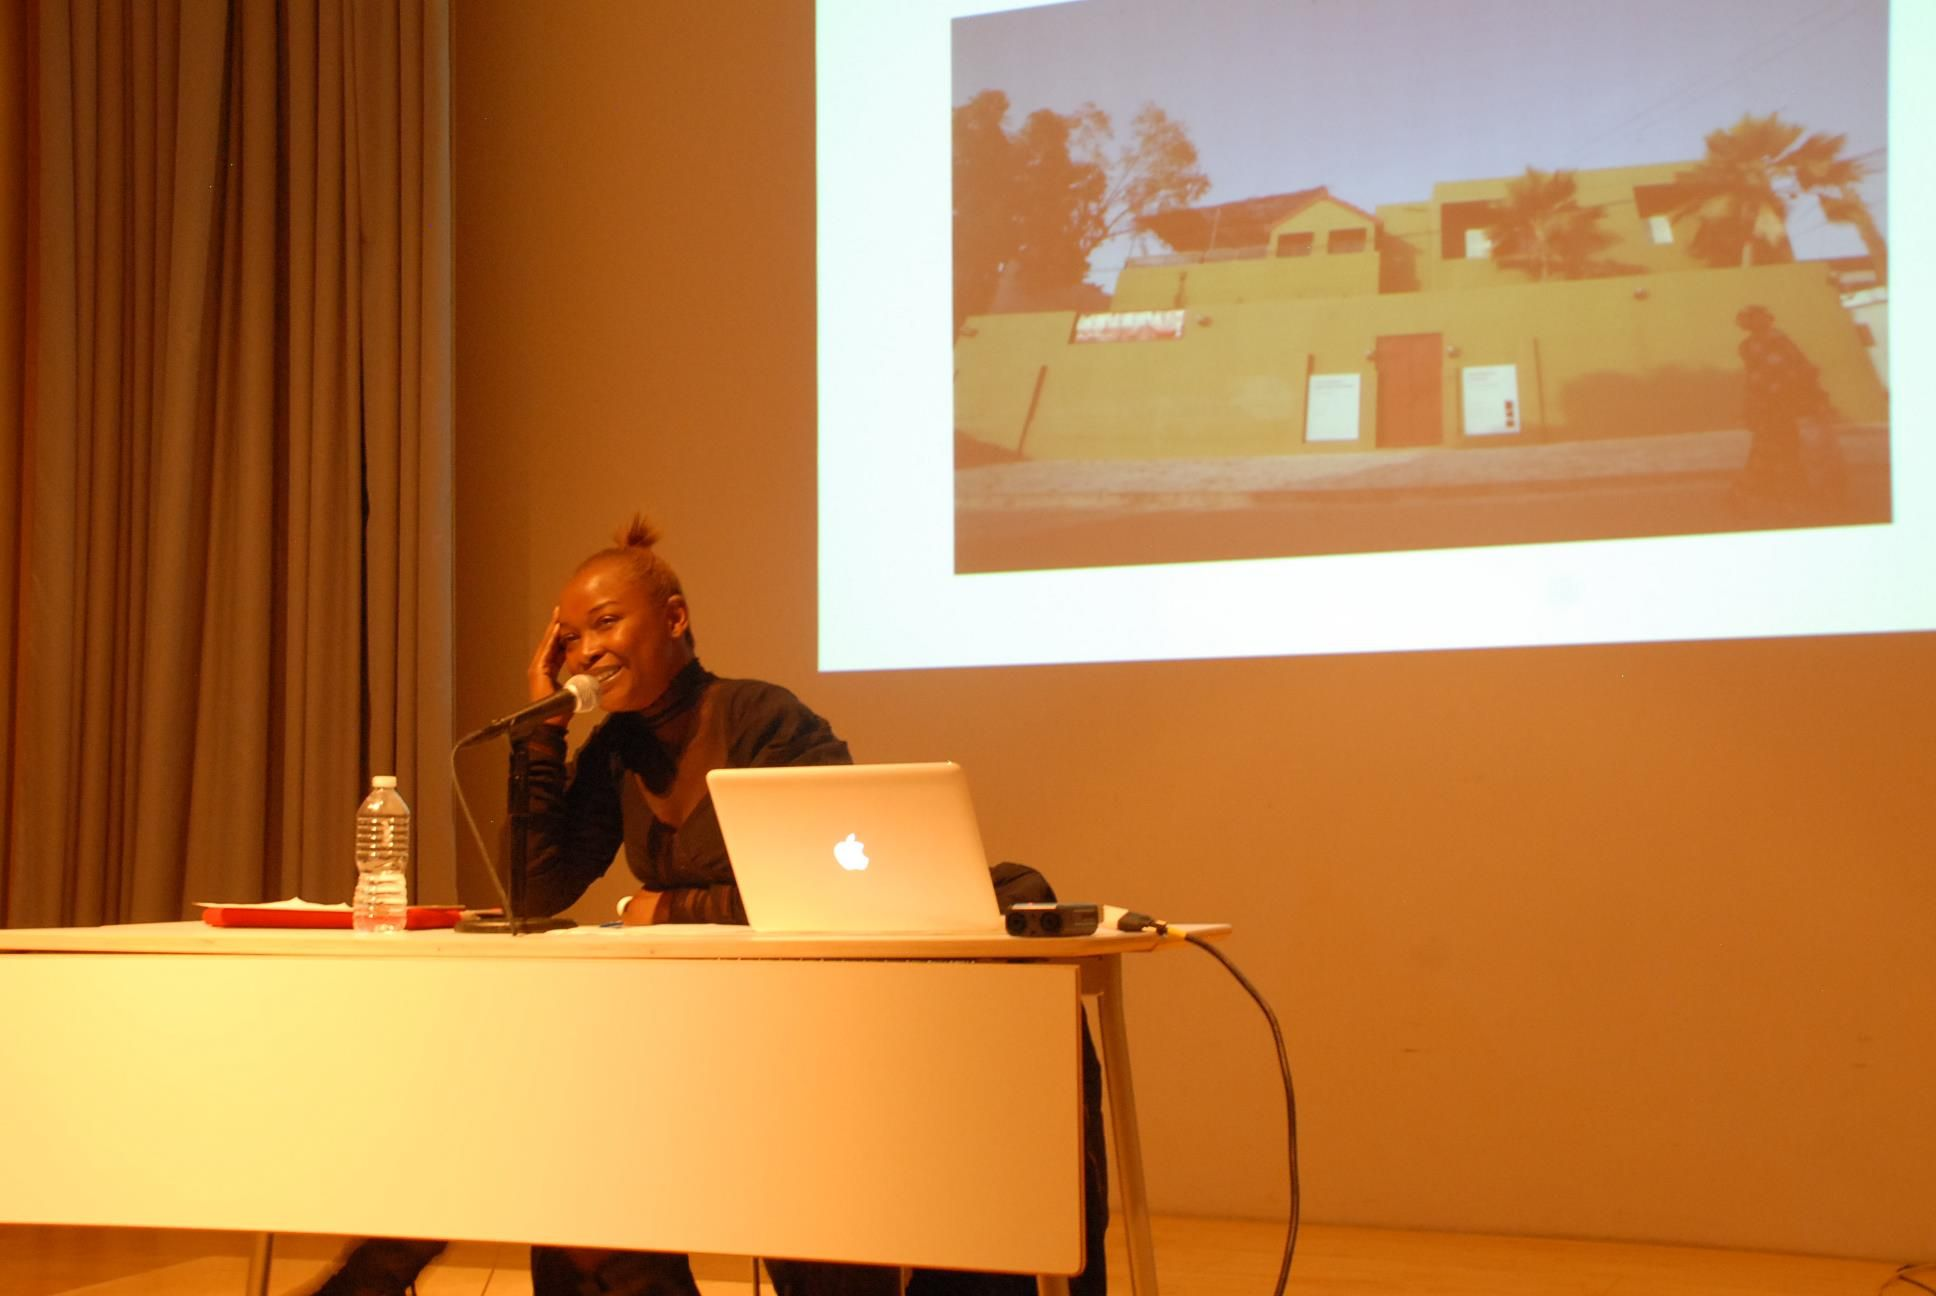 Koyo Kouch Curator S Perspective At The New Museum New Museum